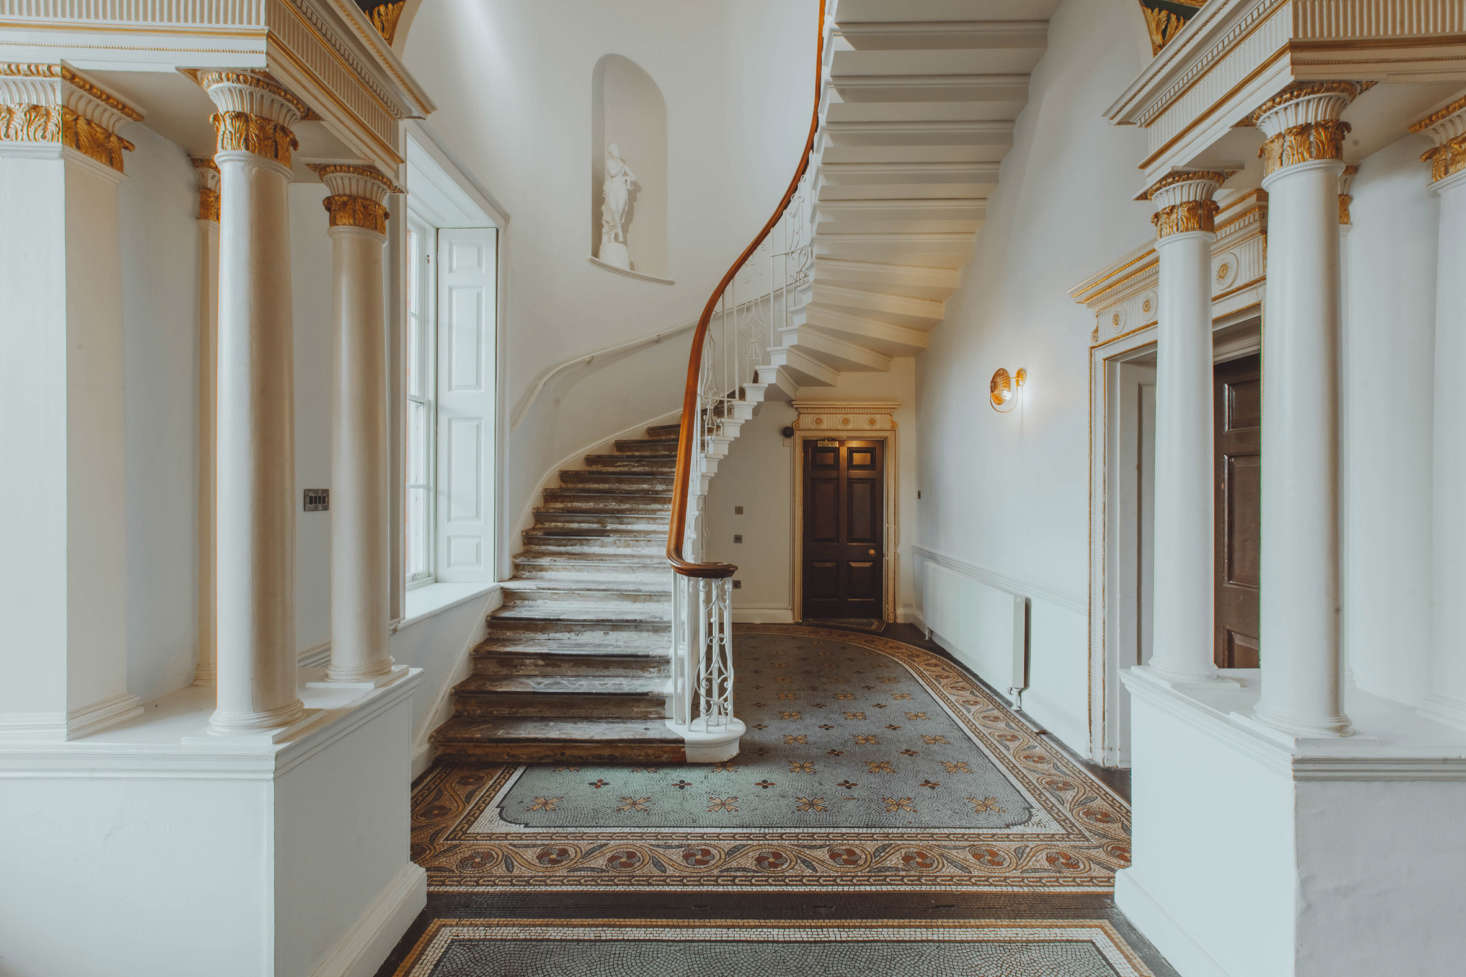 The monumental staircase was restored.